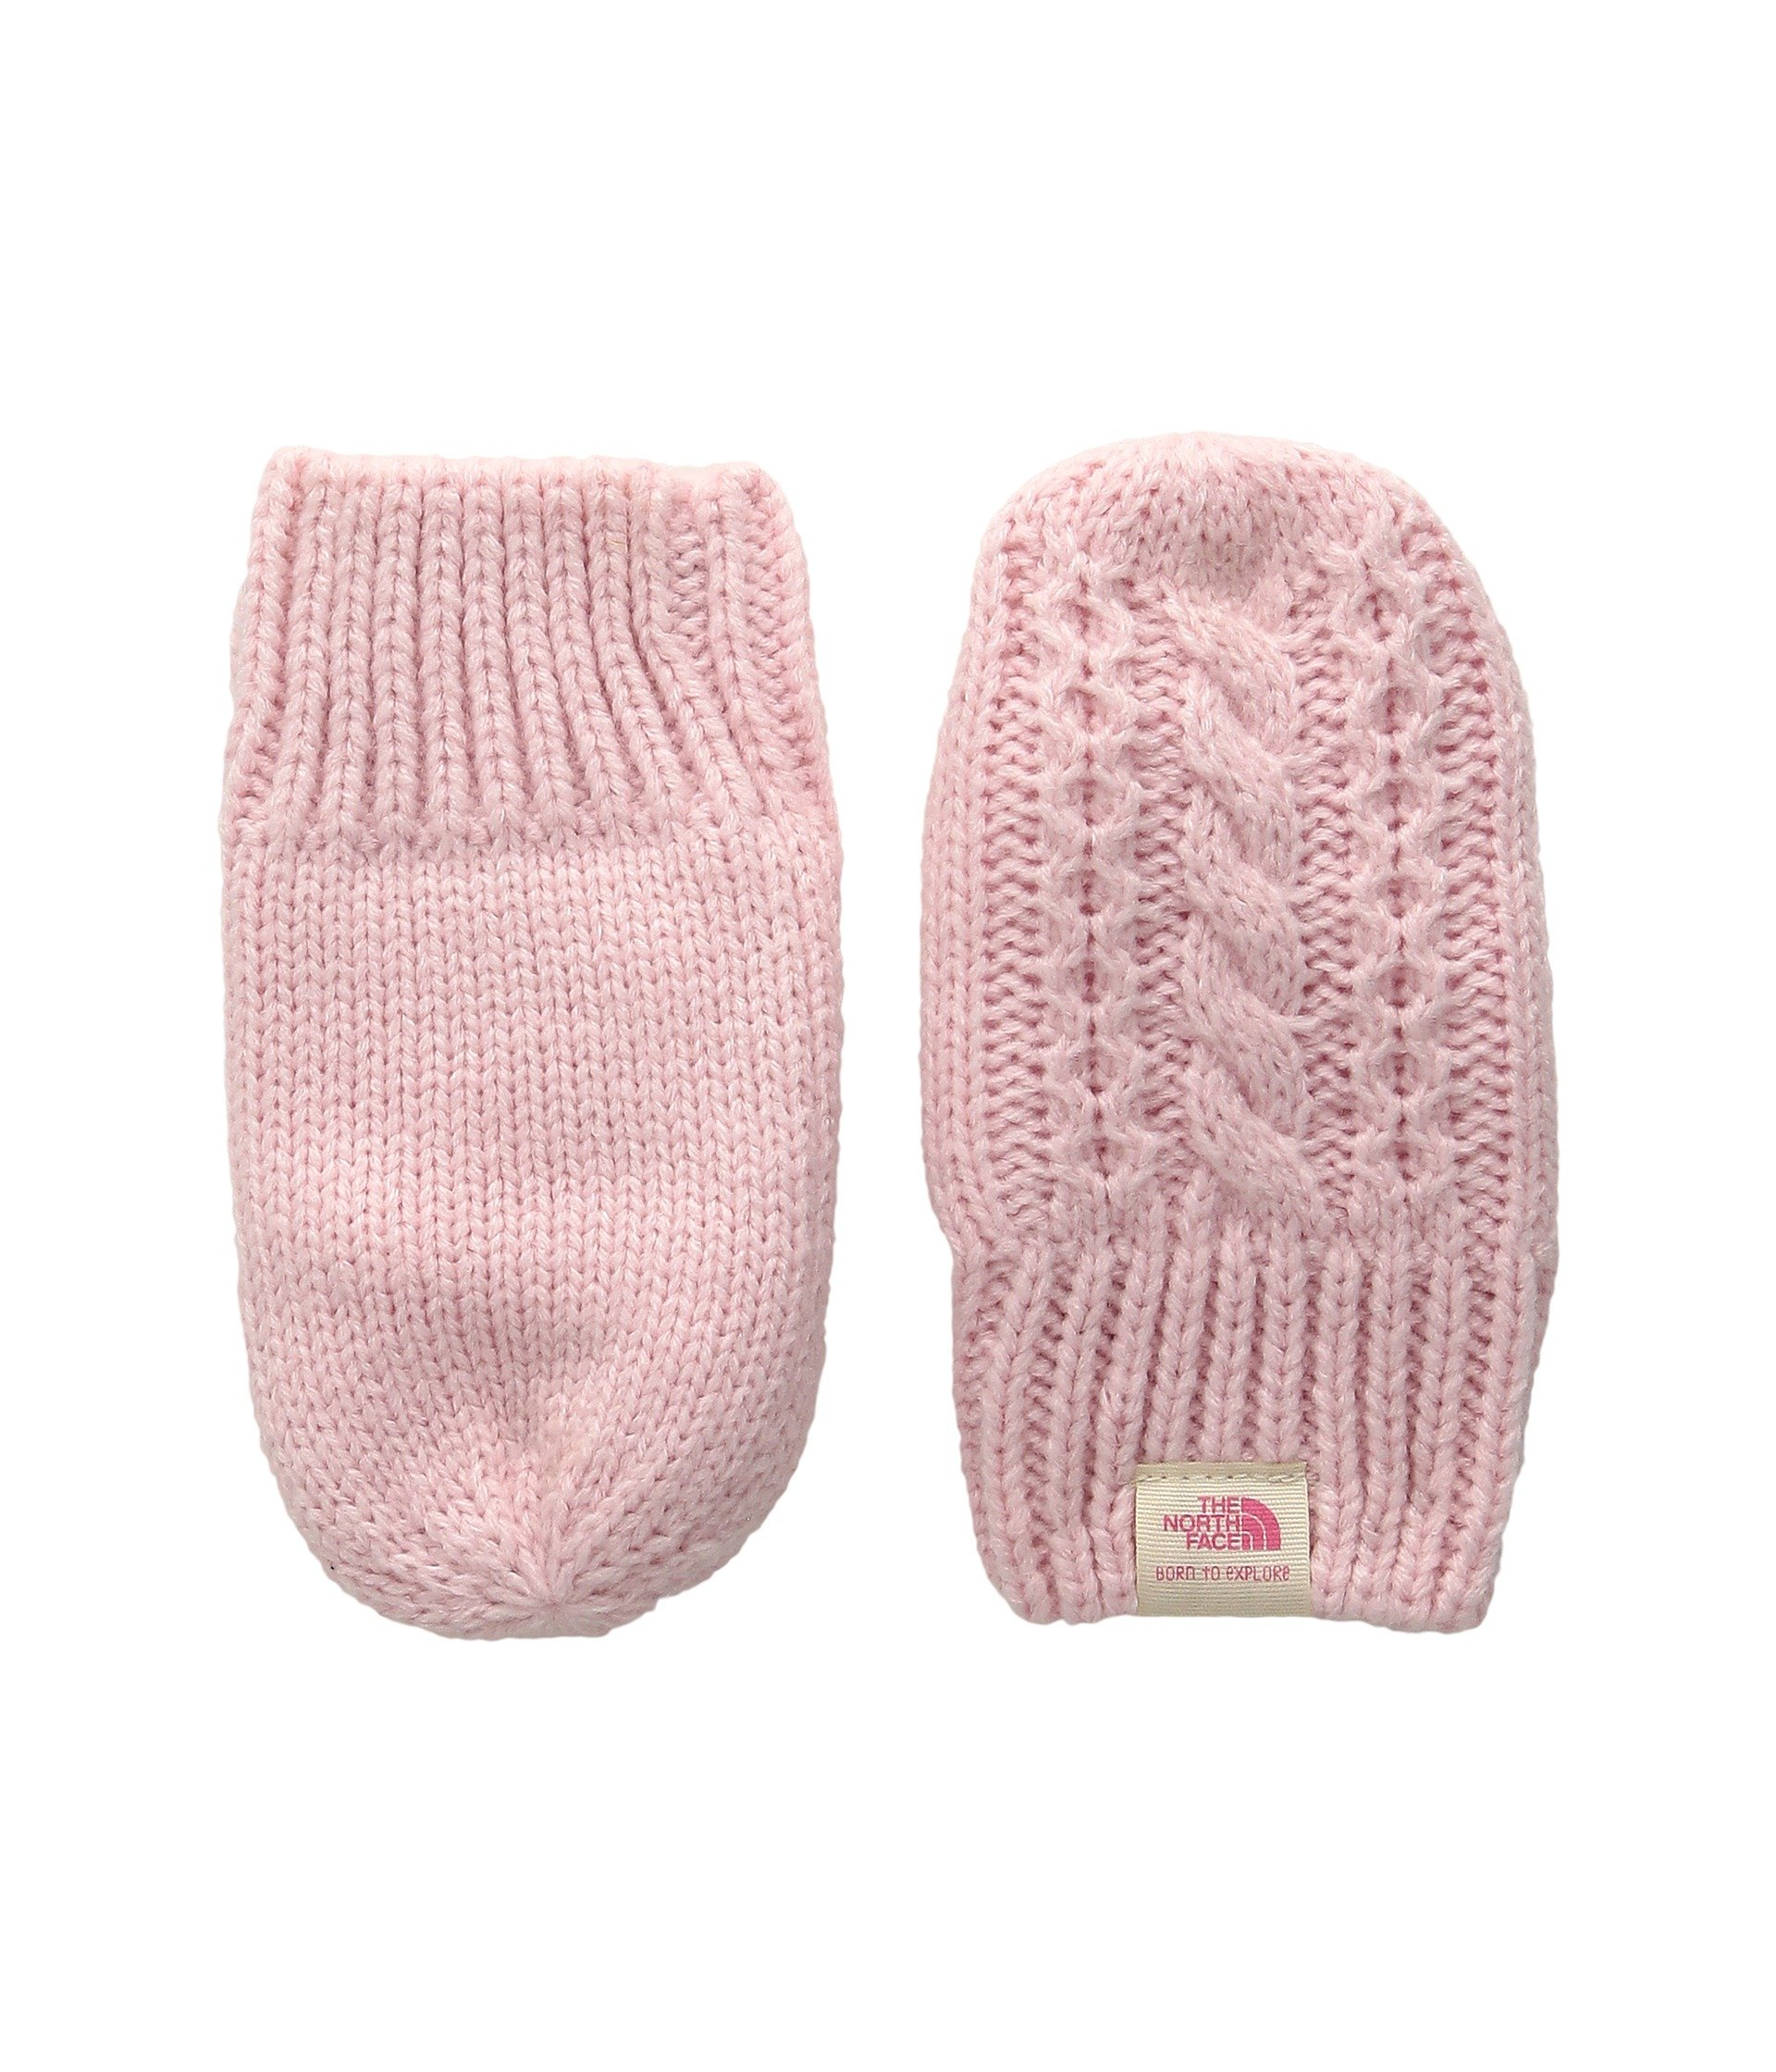 Guantes para Niña The North Face Kids Baby Minna Mitt (Infant)  + The North Face en VeoyCompro.net